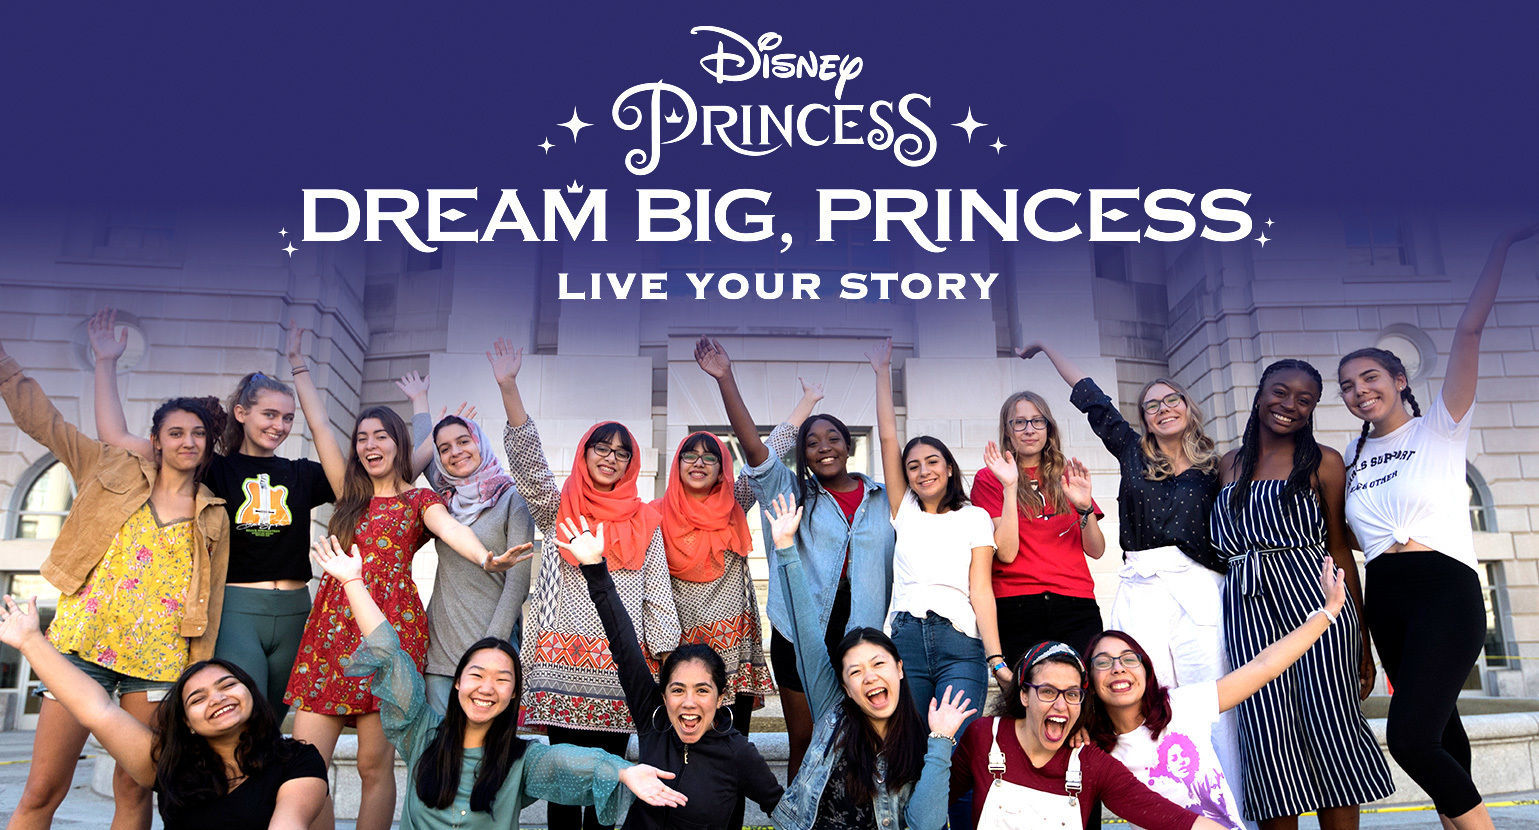 Disney #DreamBigPrincess #Disney #girlup